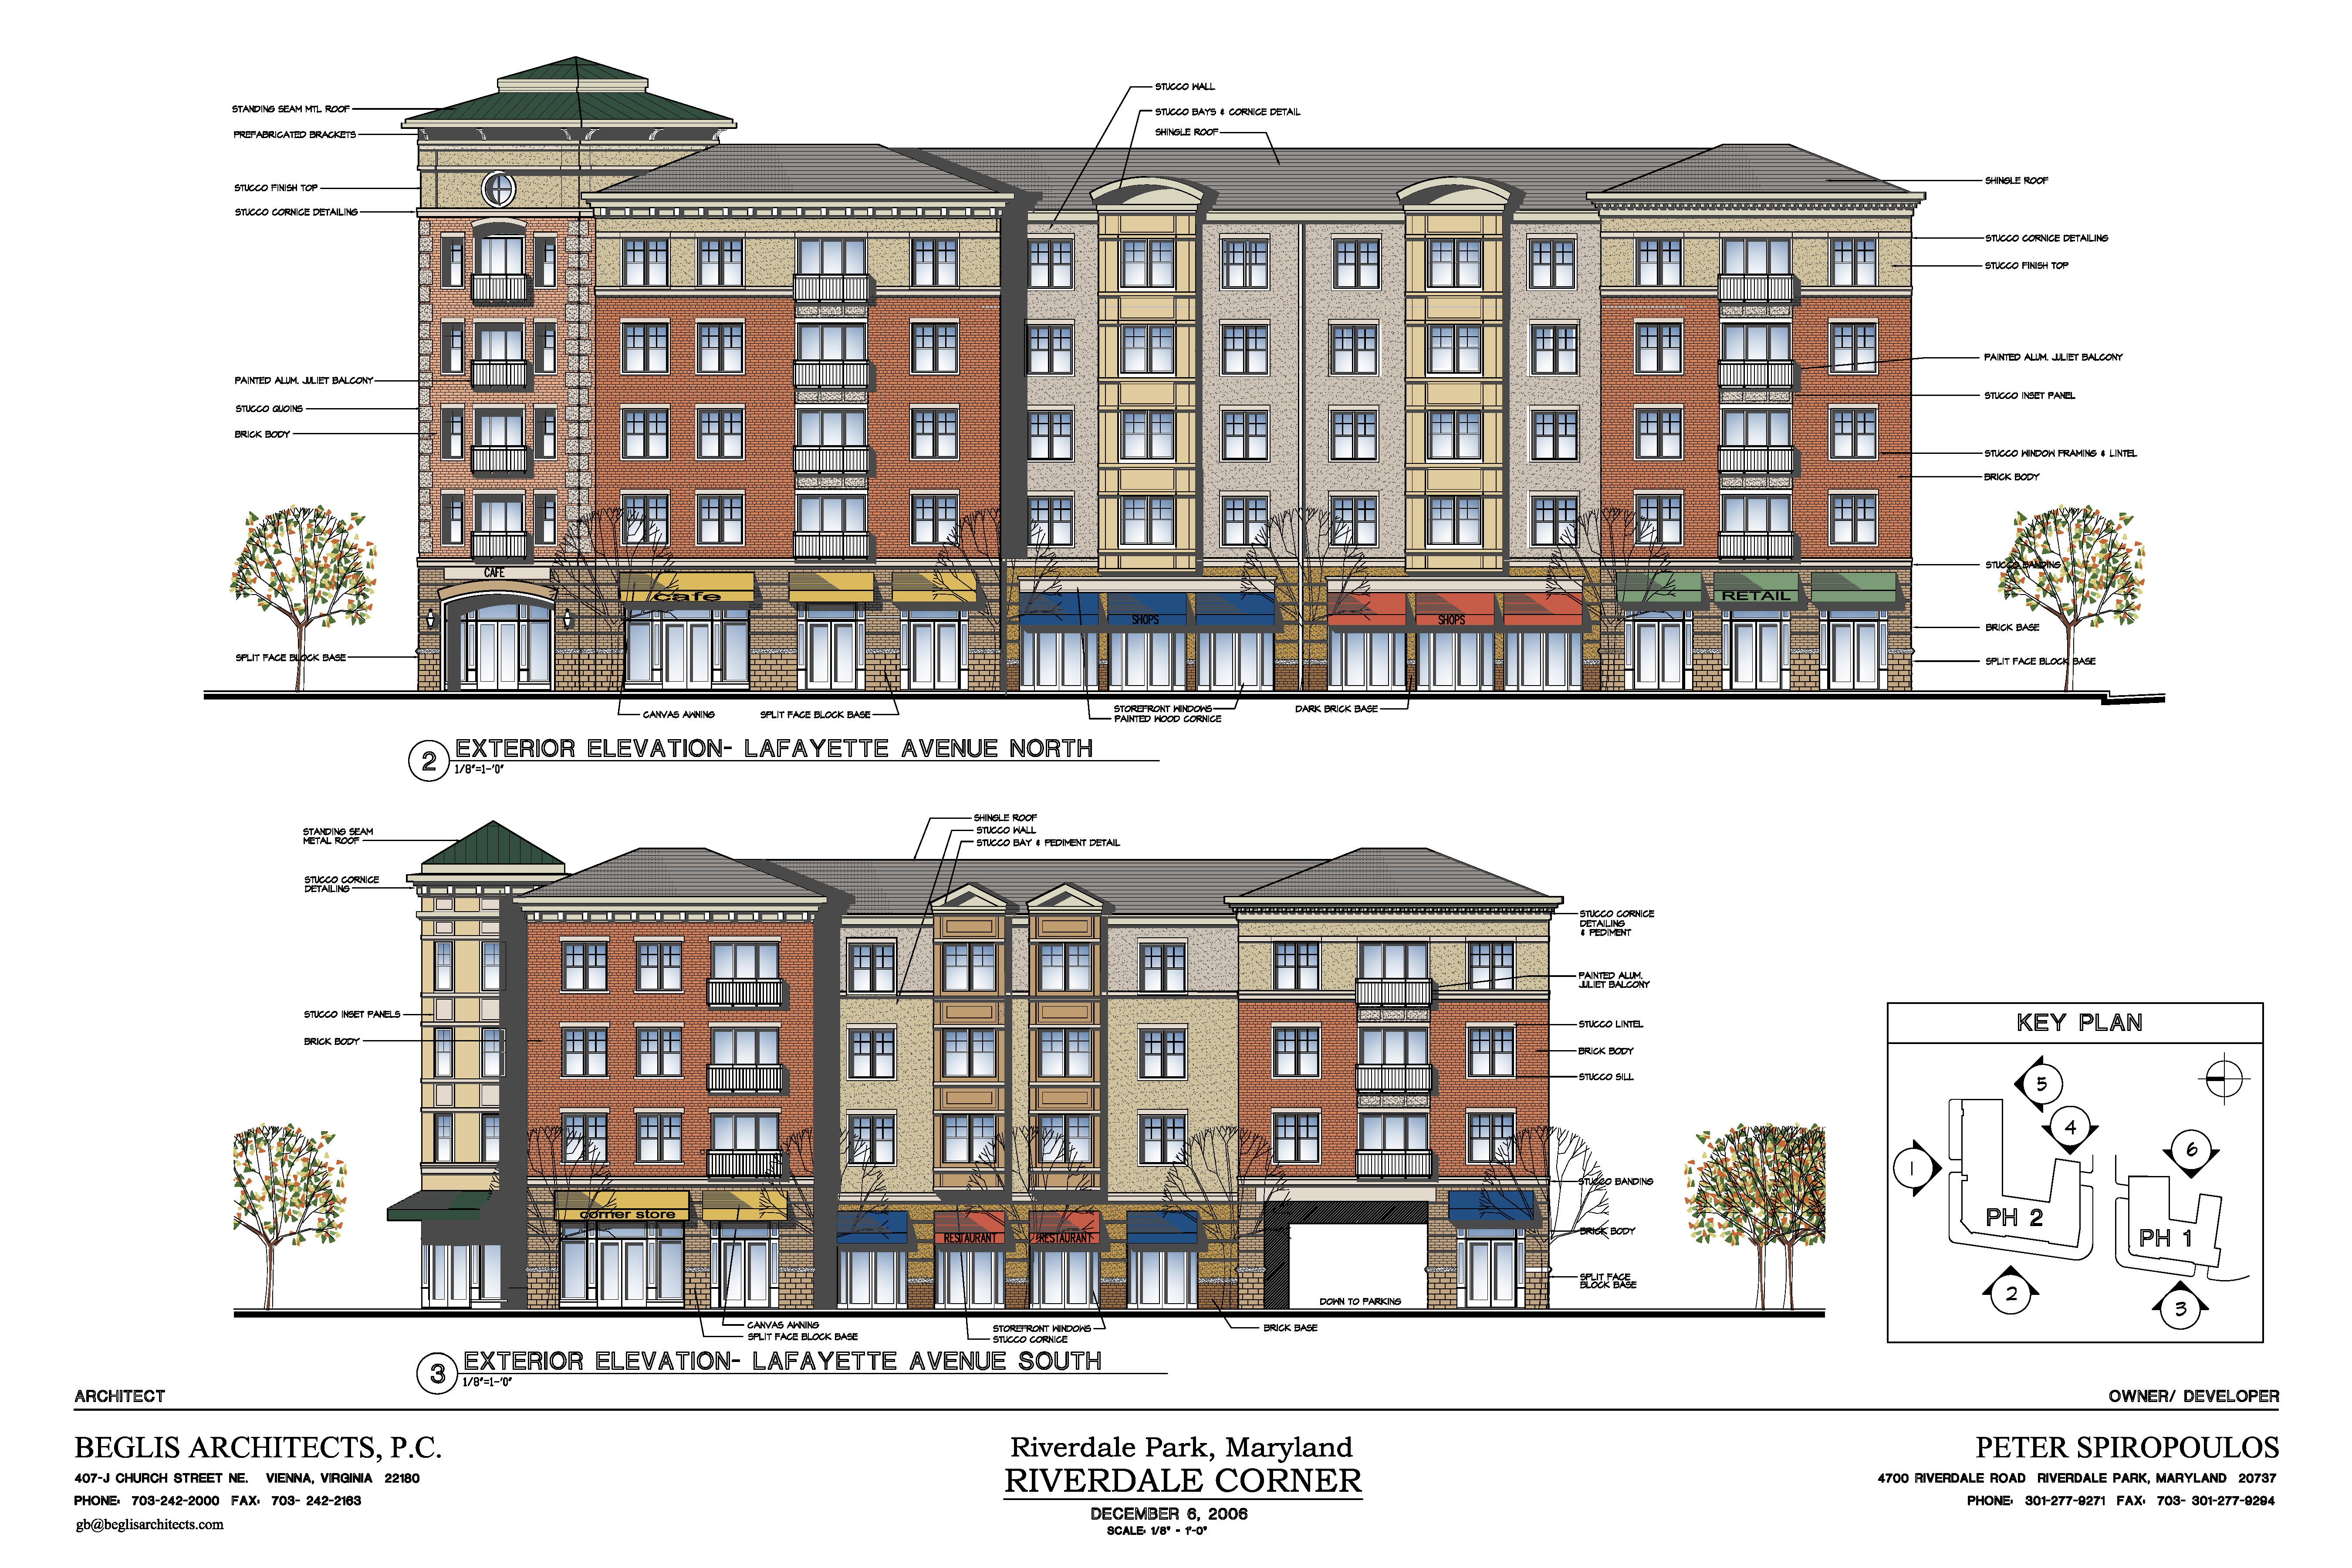 Riverdale Sheet 5- Elevations